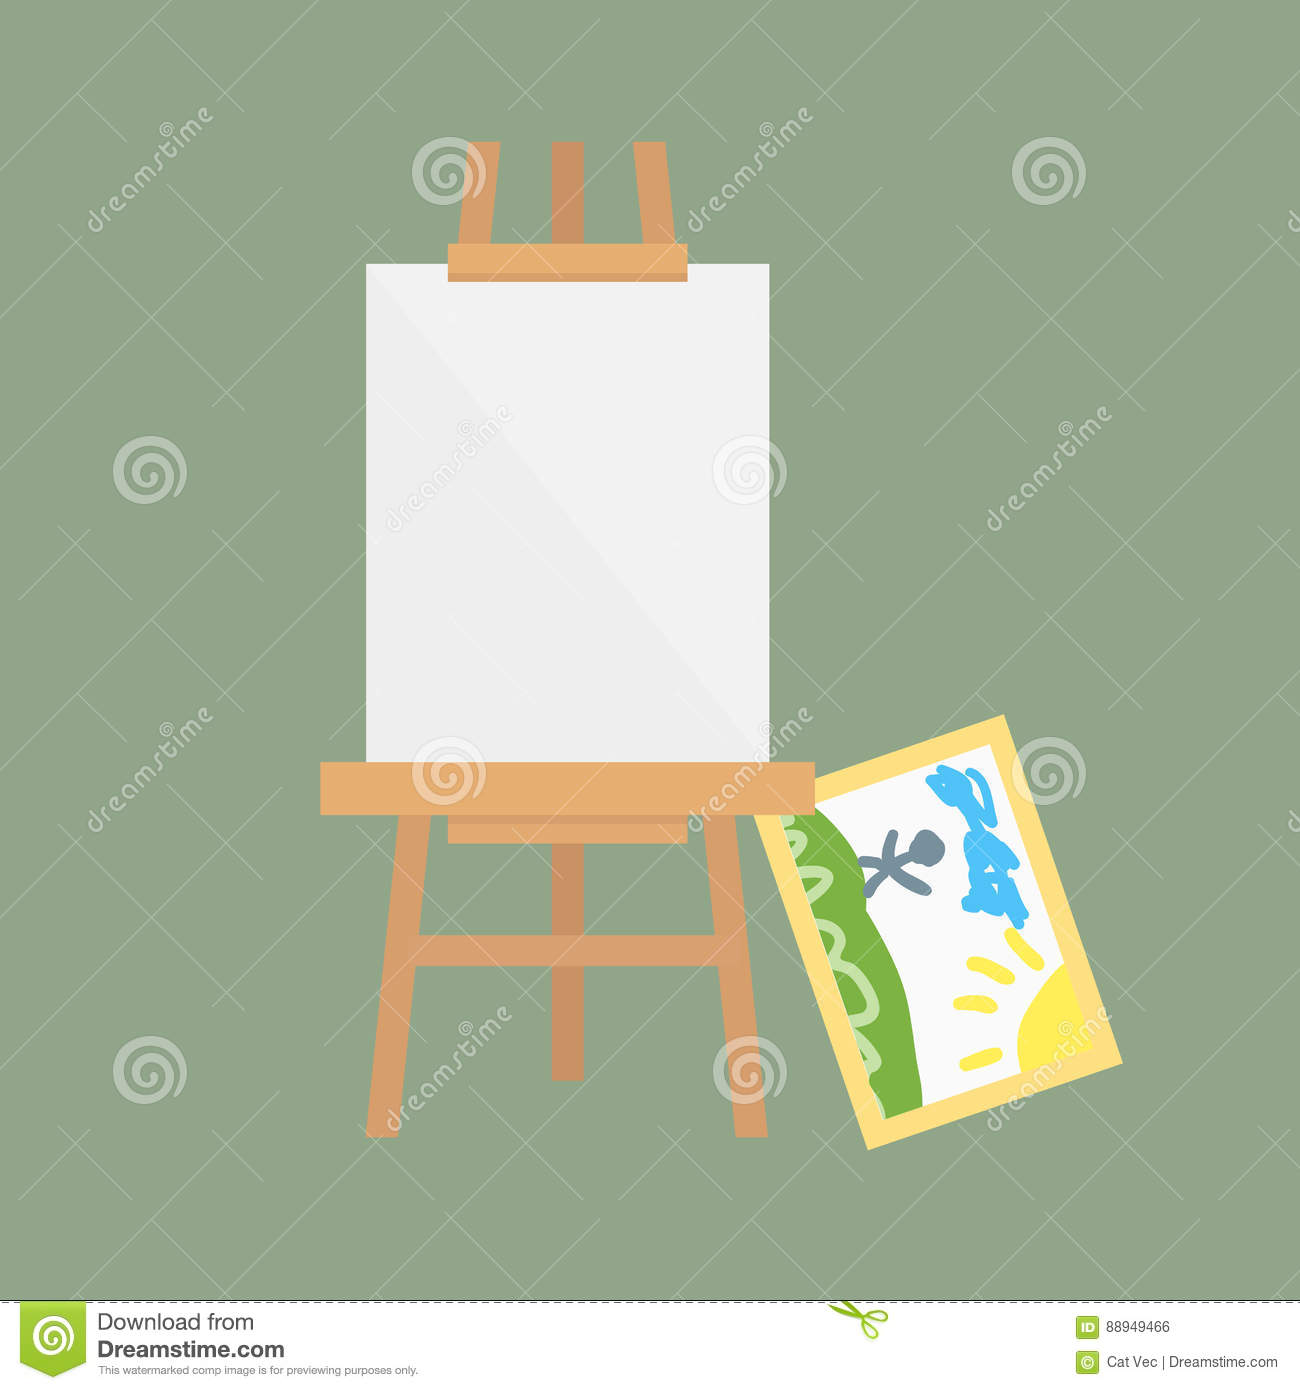 Easel art board vector isolated for some artist with paint palette paper canvas artboard and themed kids creativity